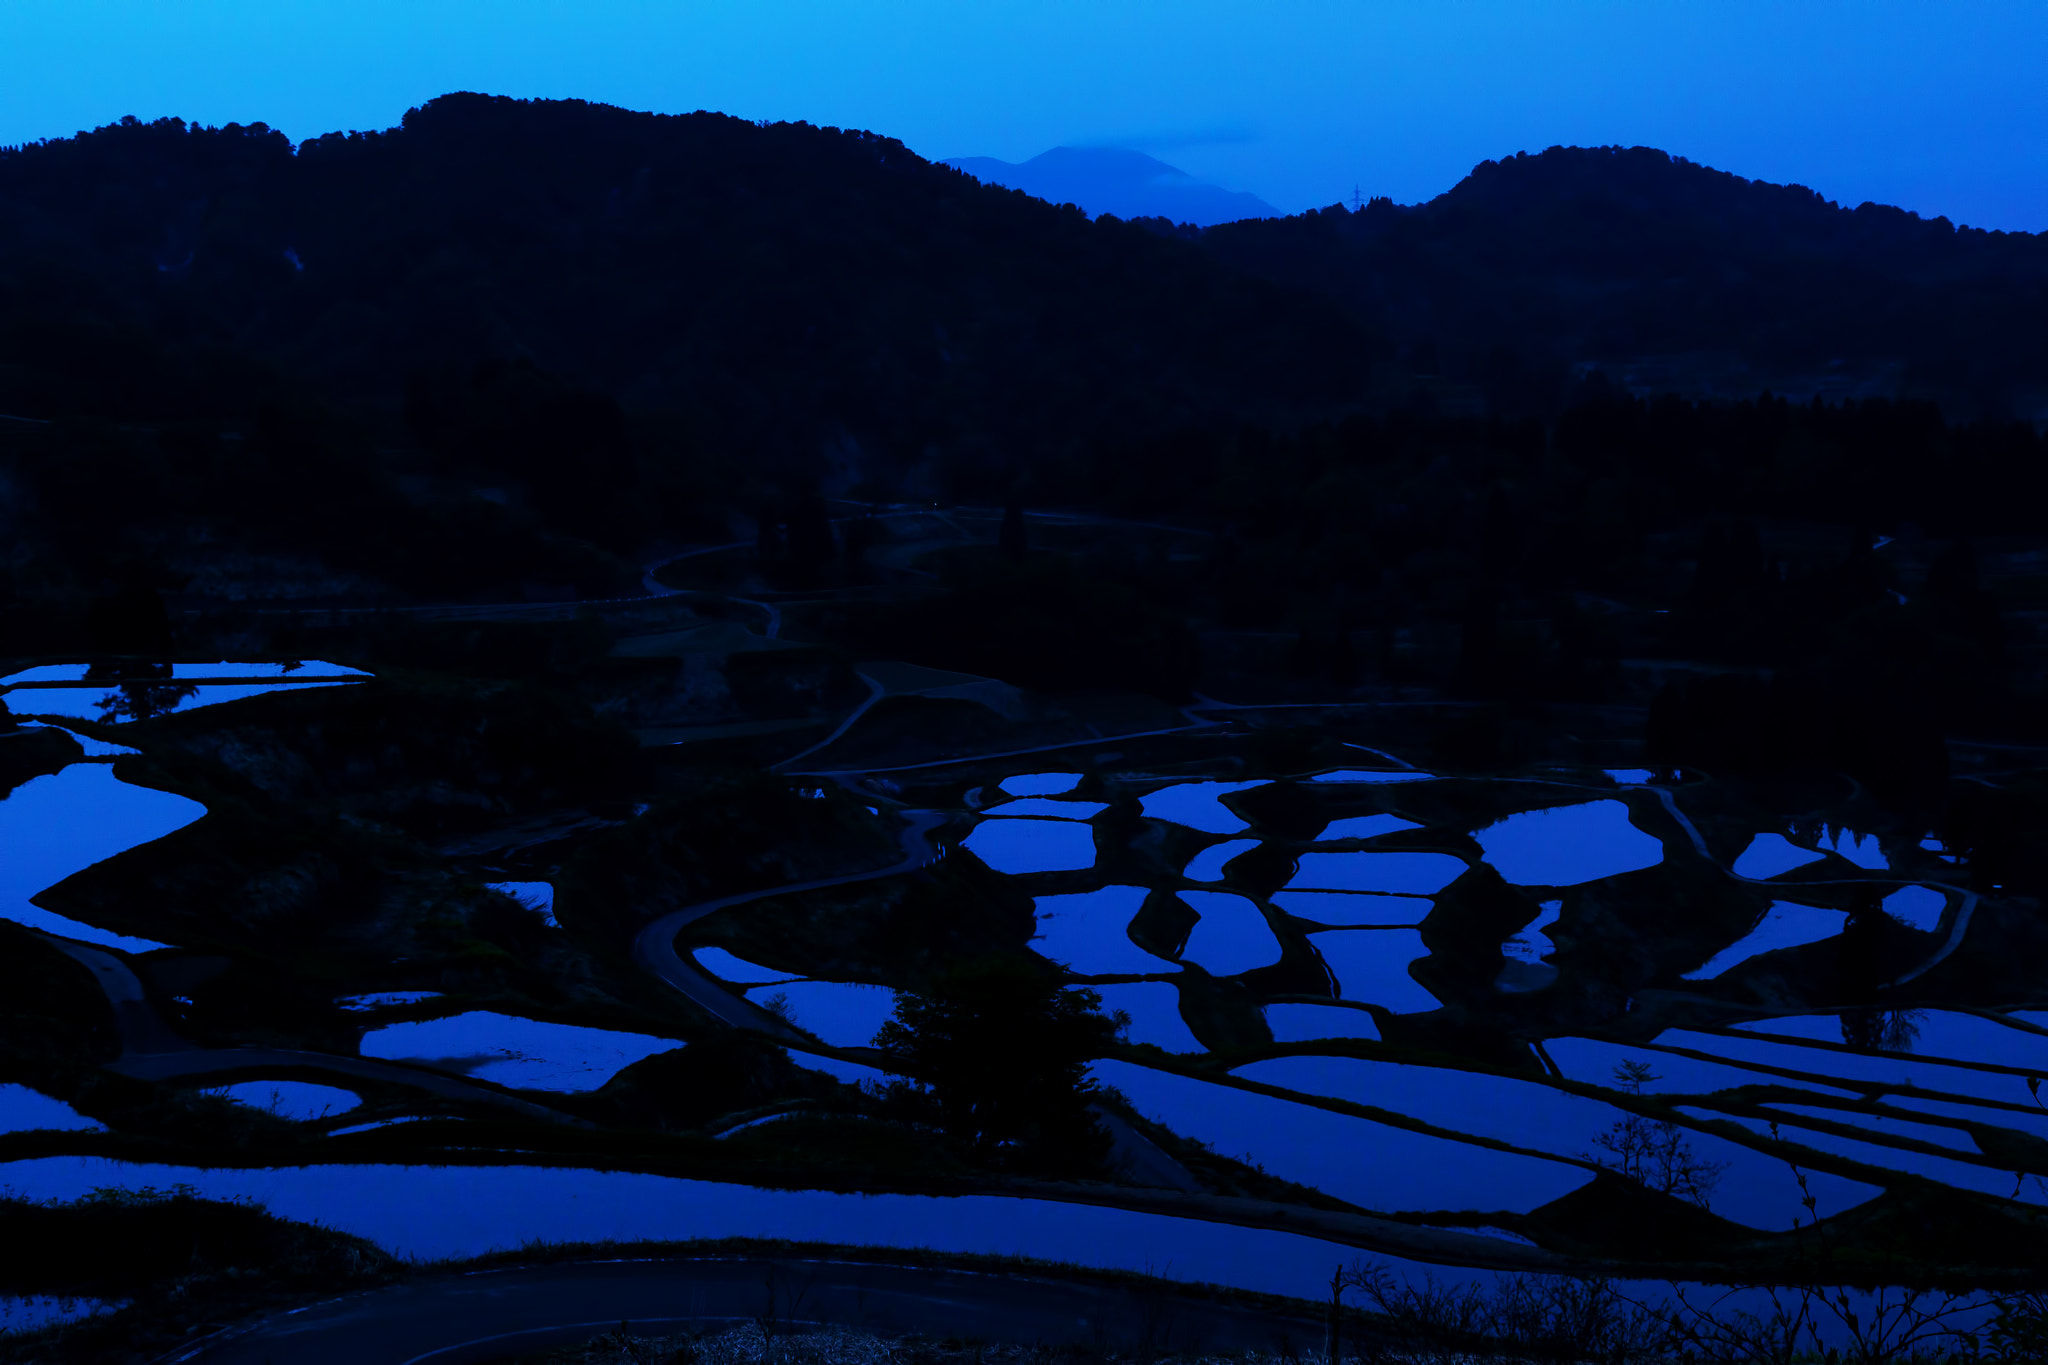 Photograph Rice terrace by MIYAMOTO Y on 500px